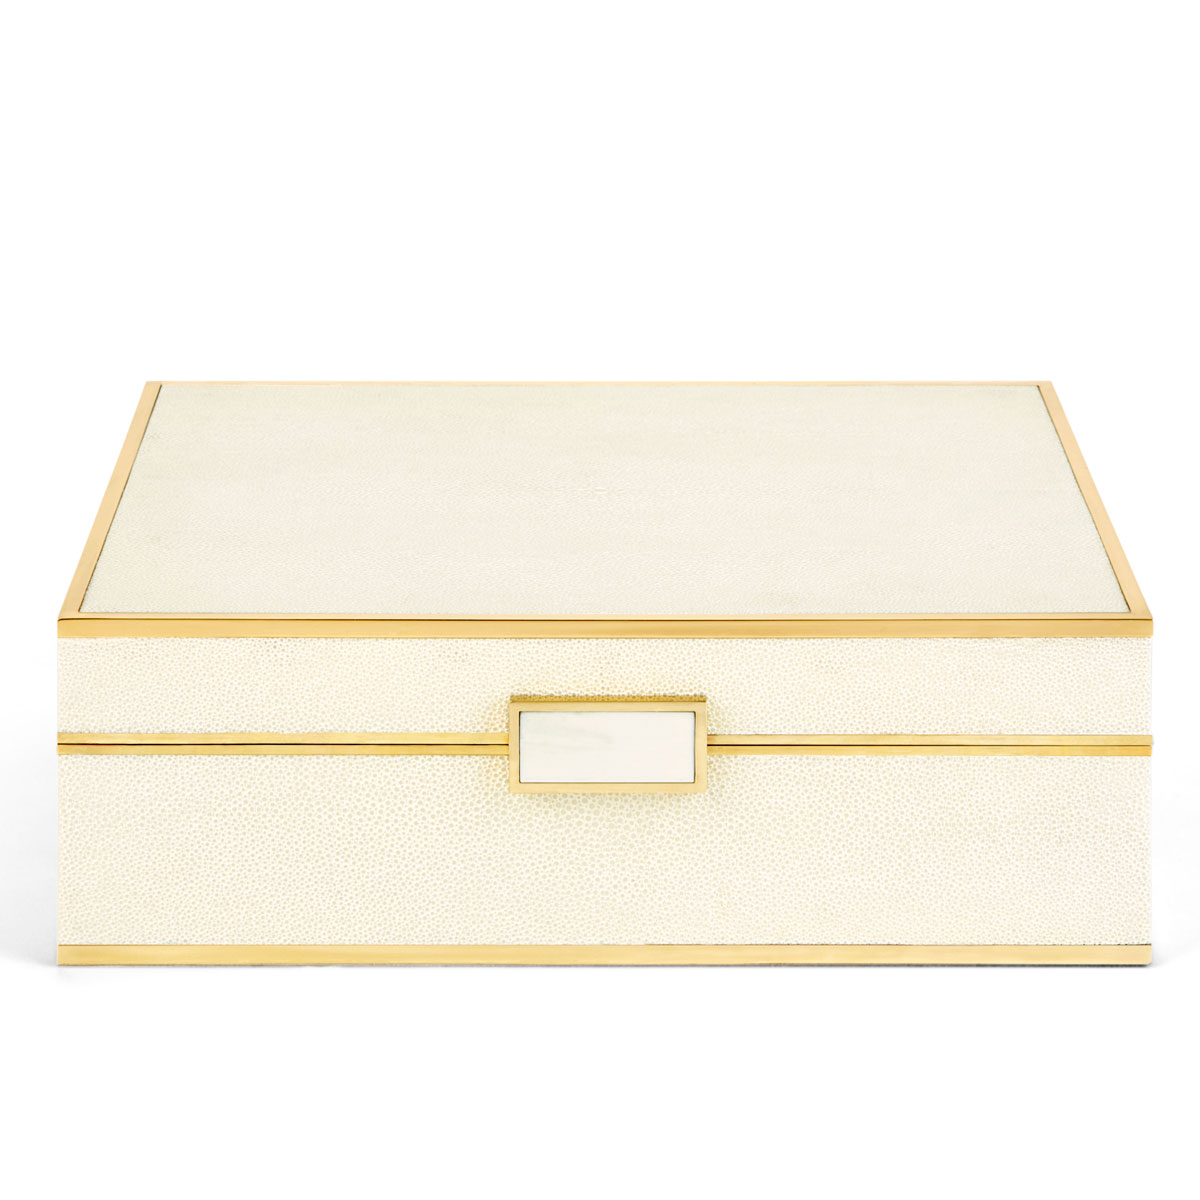 Aerin Classic Shagreen Large Jewelry Box, Cream